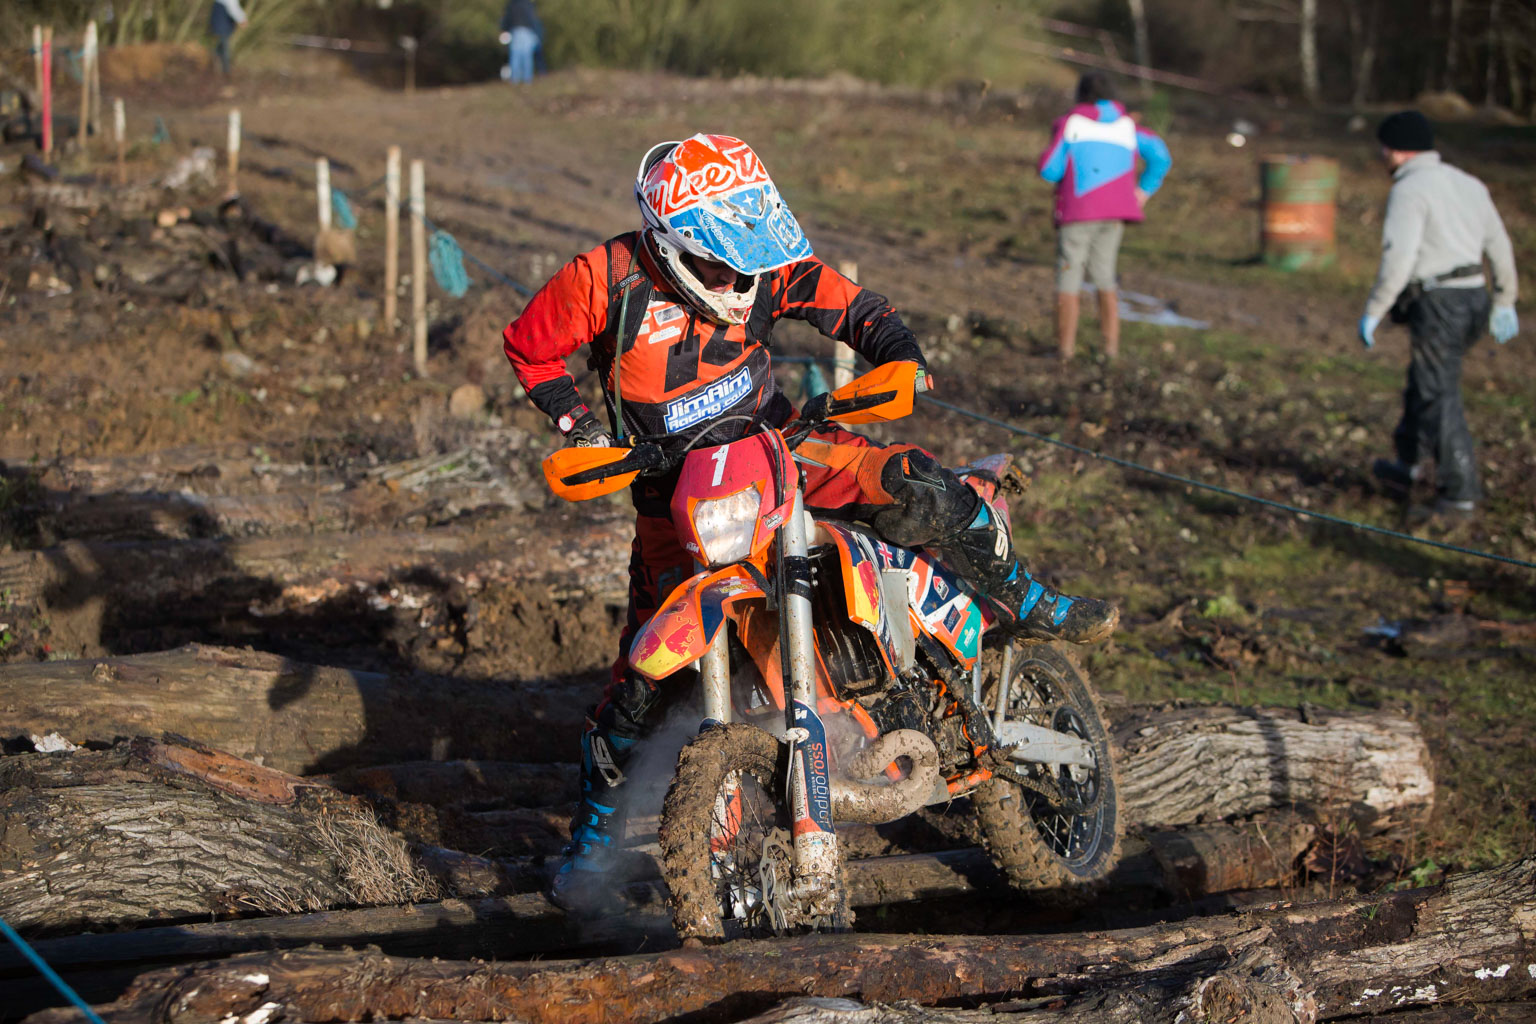 Stevie Roper was fourth in the pro class